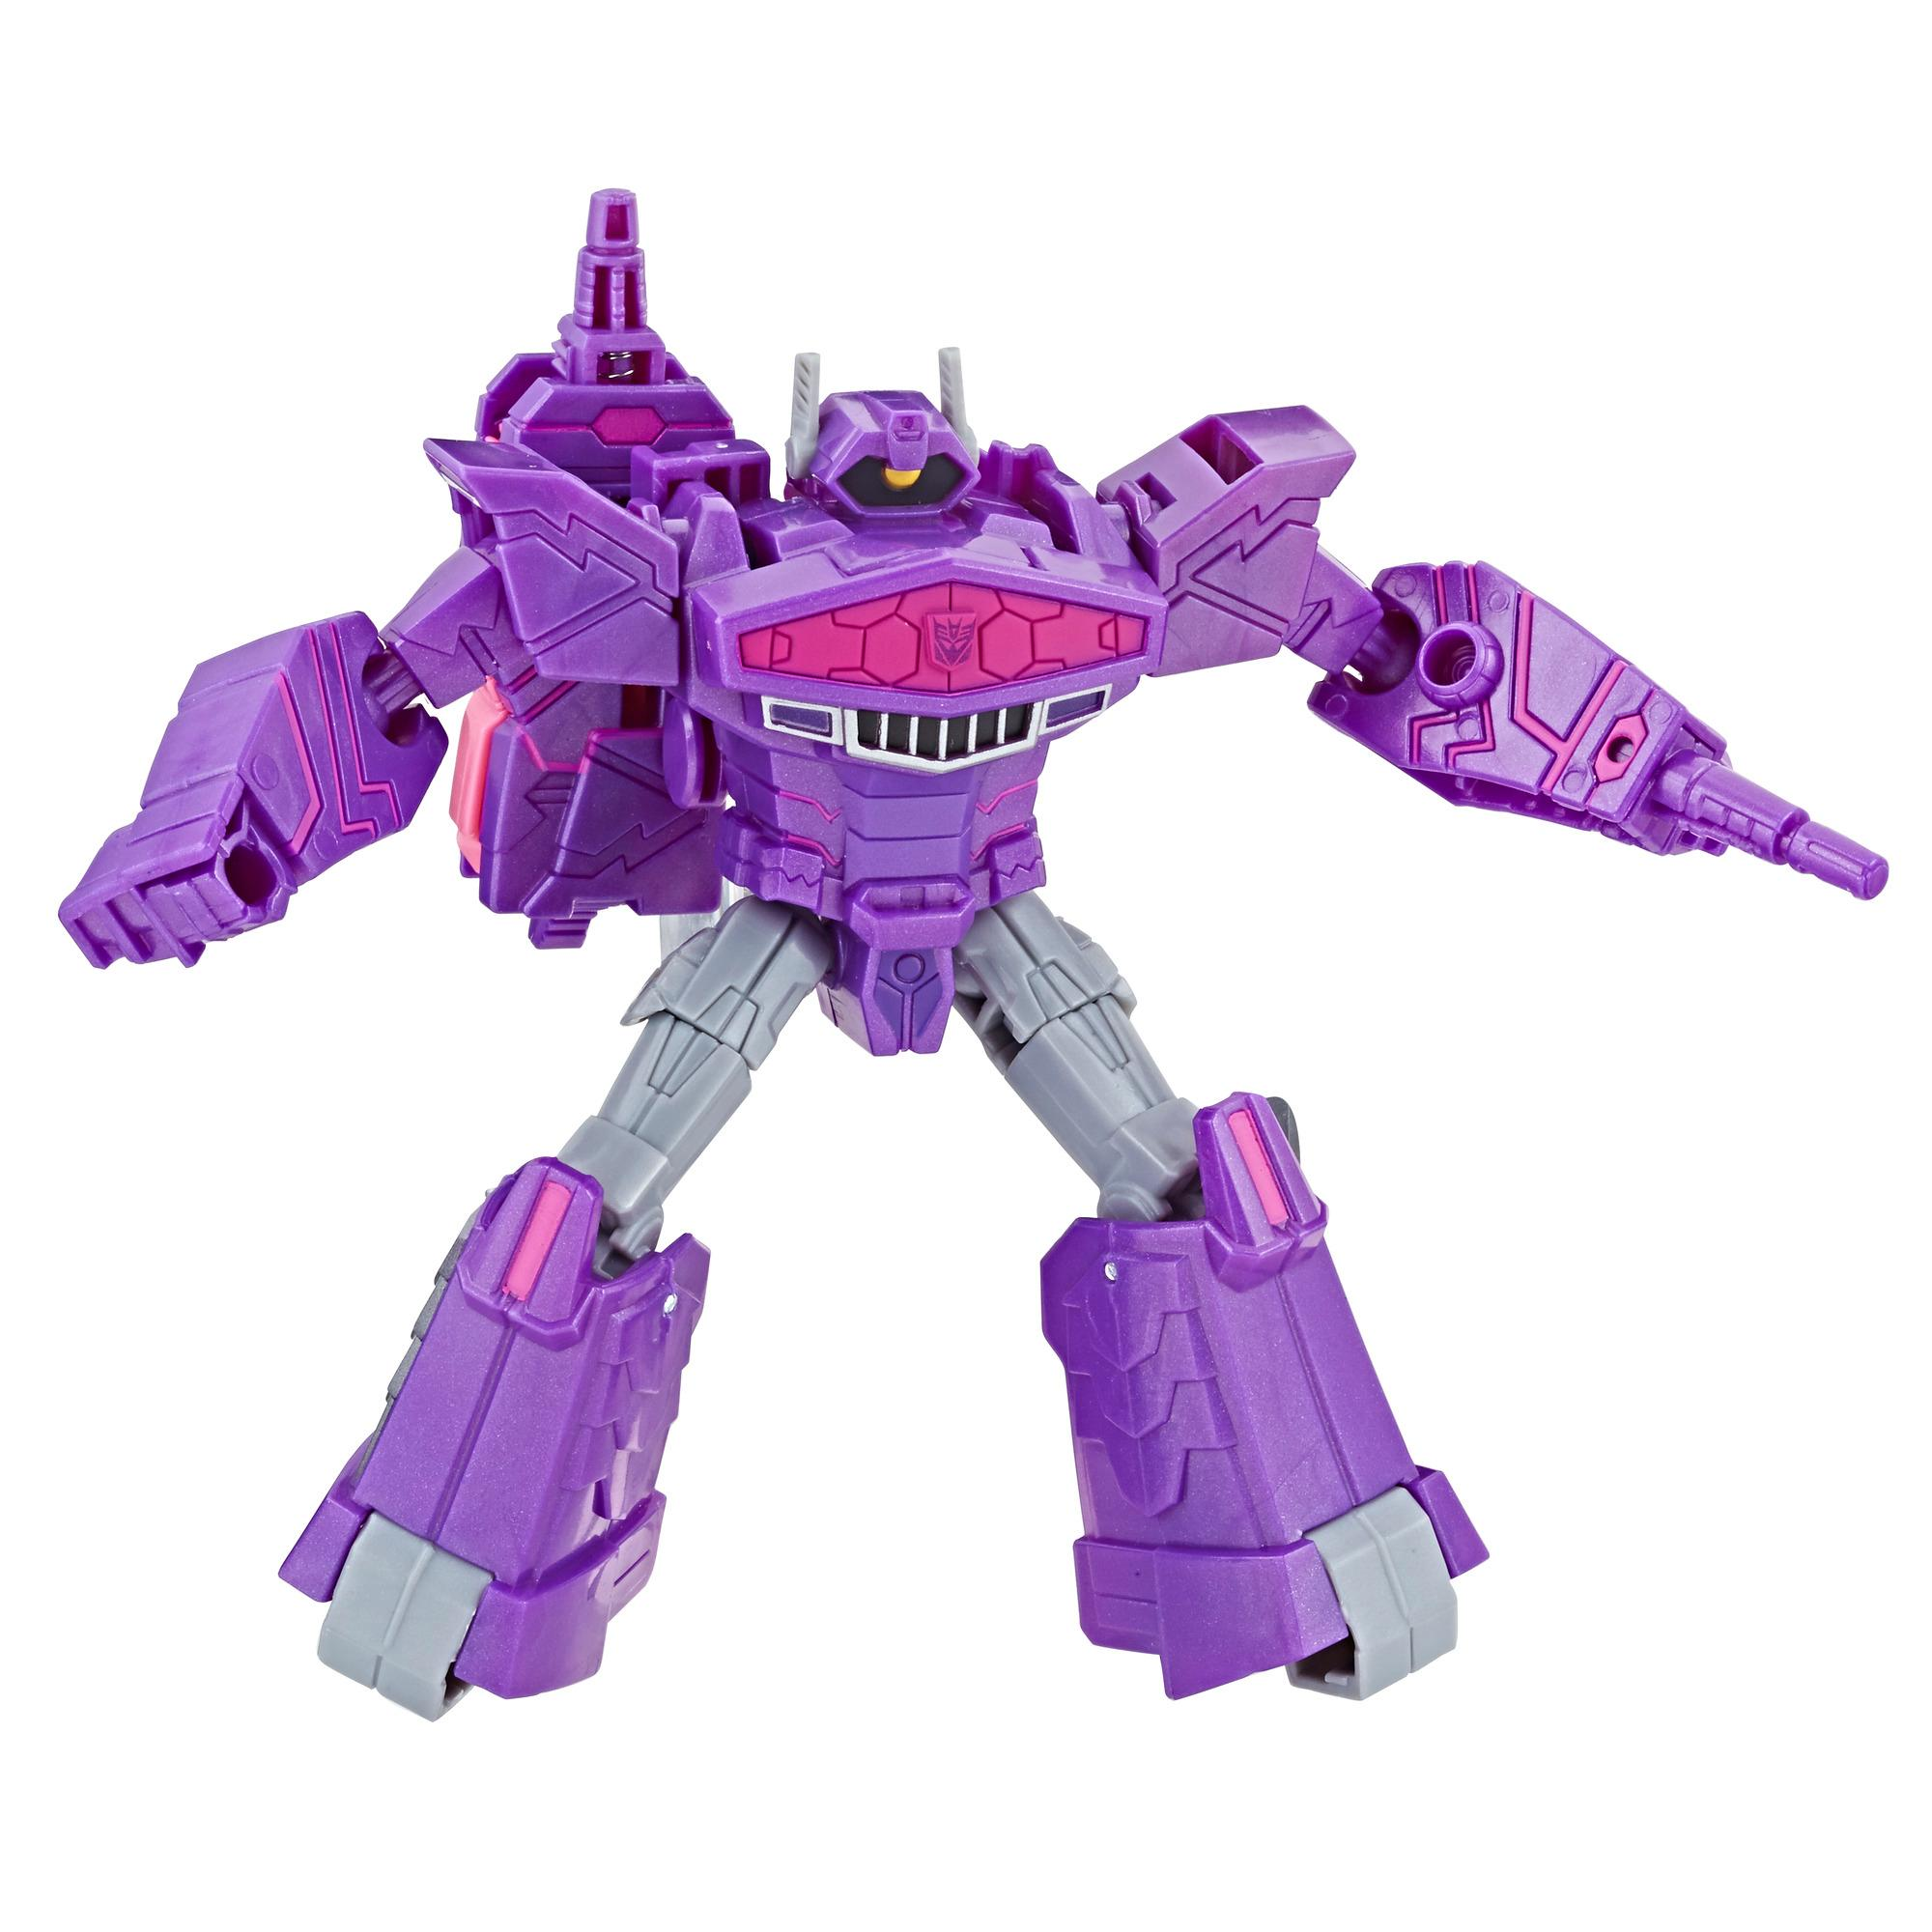 Transformers Cyberverse - Decepticon Shockwave de classe guerrier